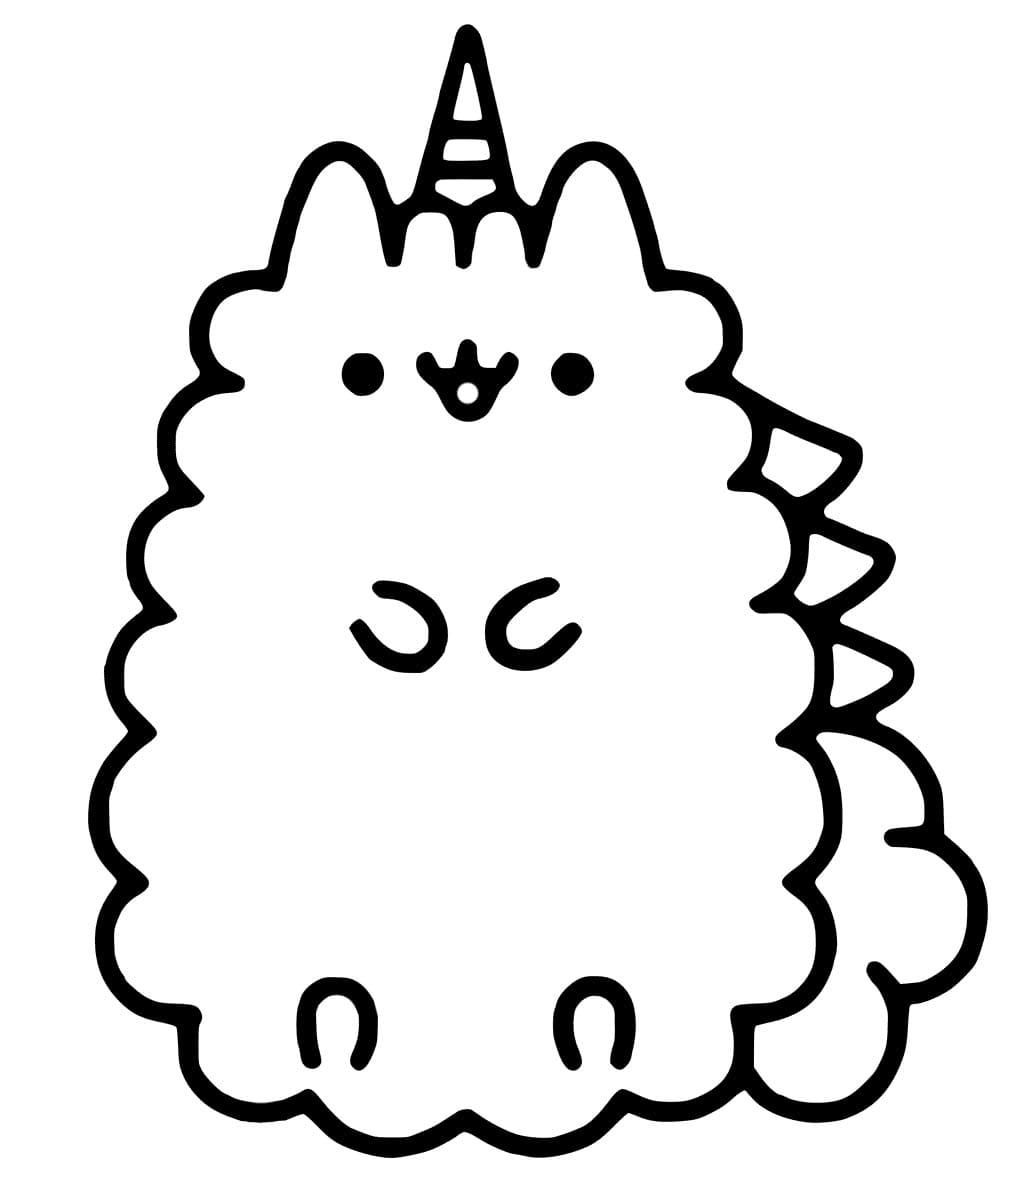 18 Coloring Page Pusheen Pusheen Coloring Pages Cool Coloring Pages Monster Coloring Pages